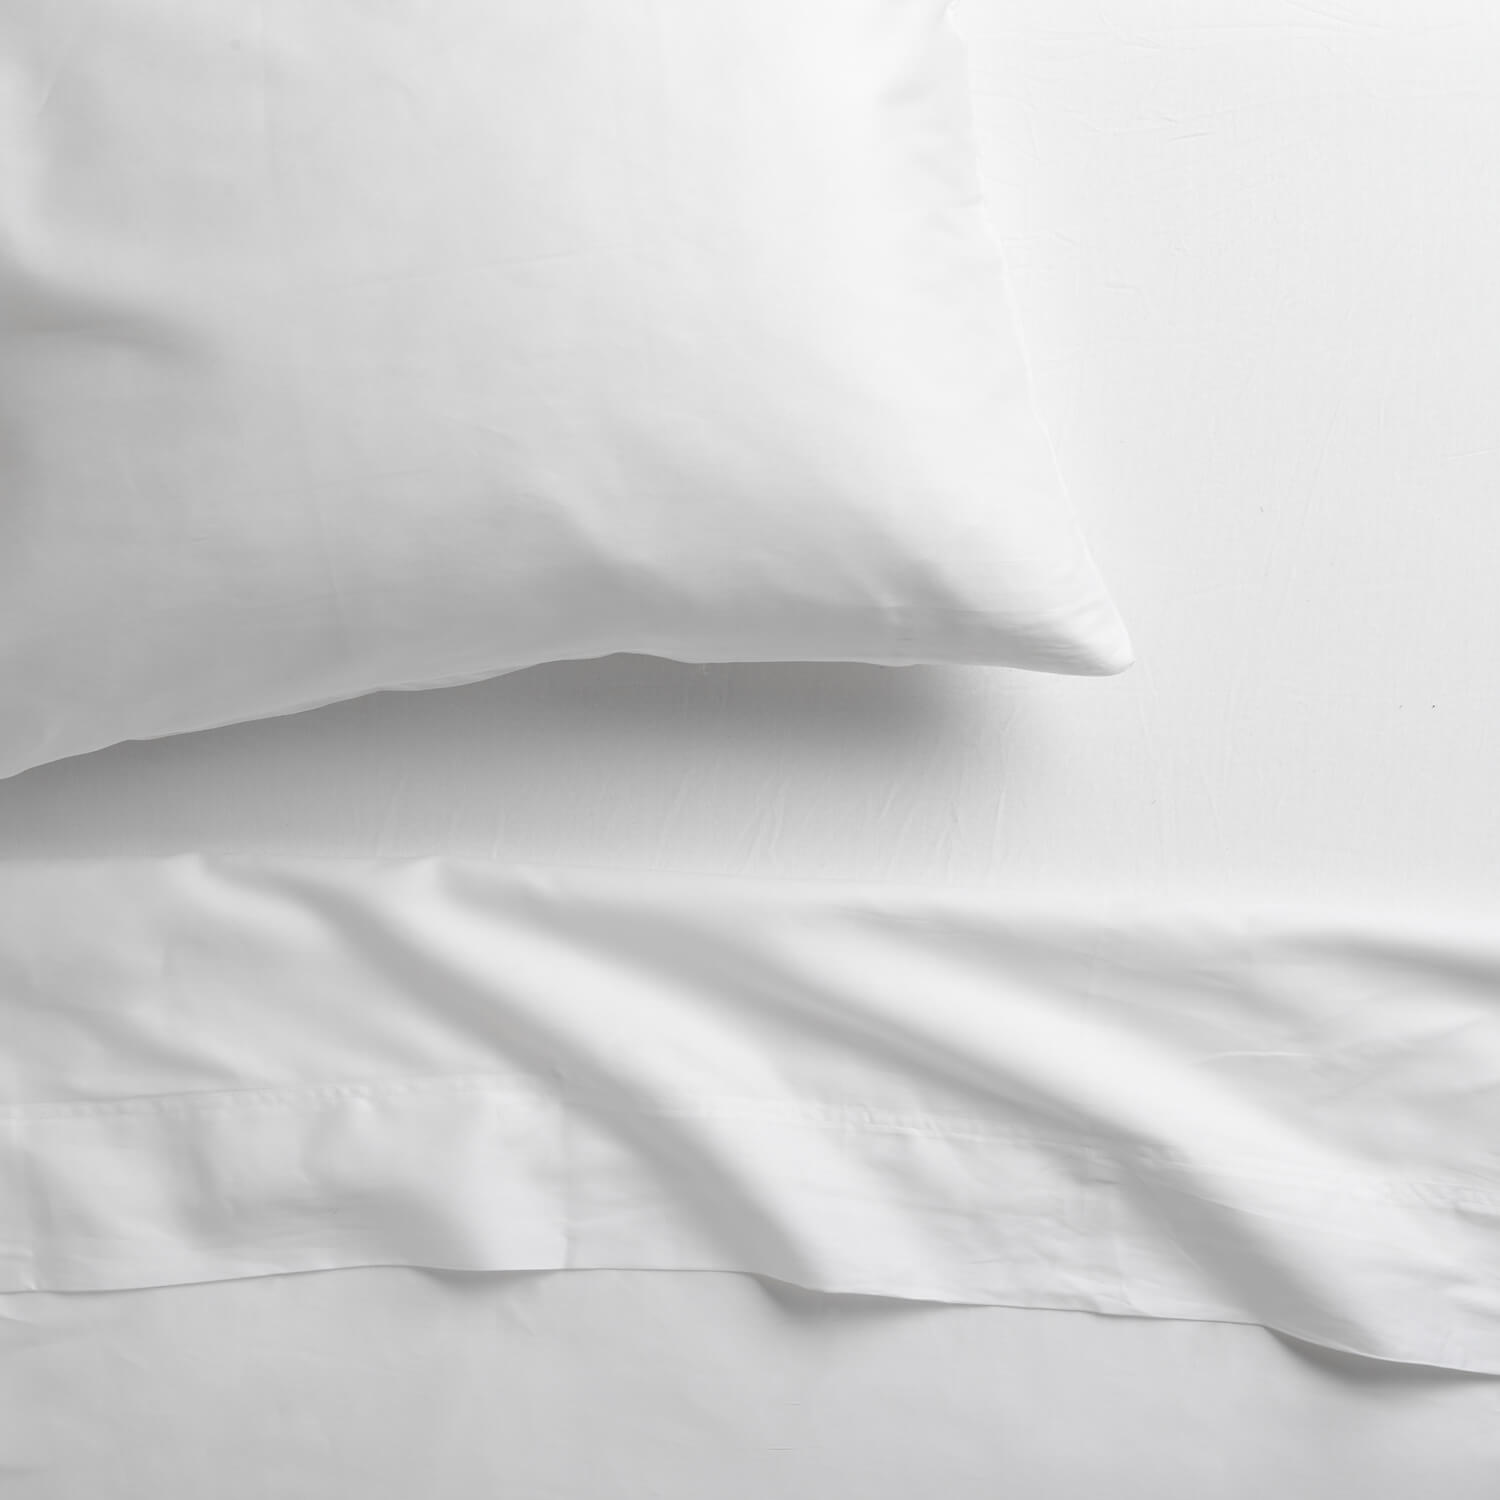 Deluxe Sheet Set, 300 Thread Count, 100% Cotton Sateen - Bright White Twin